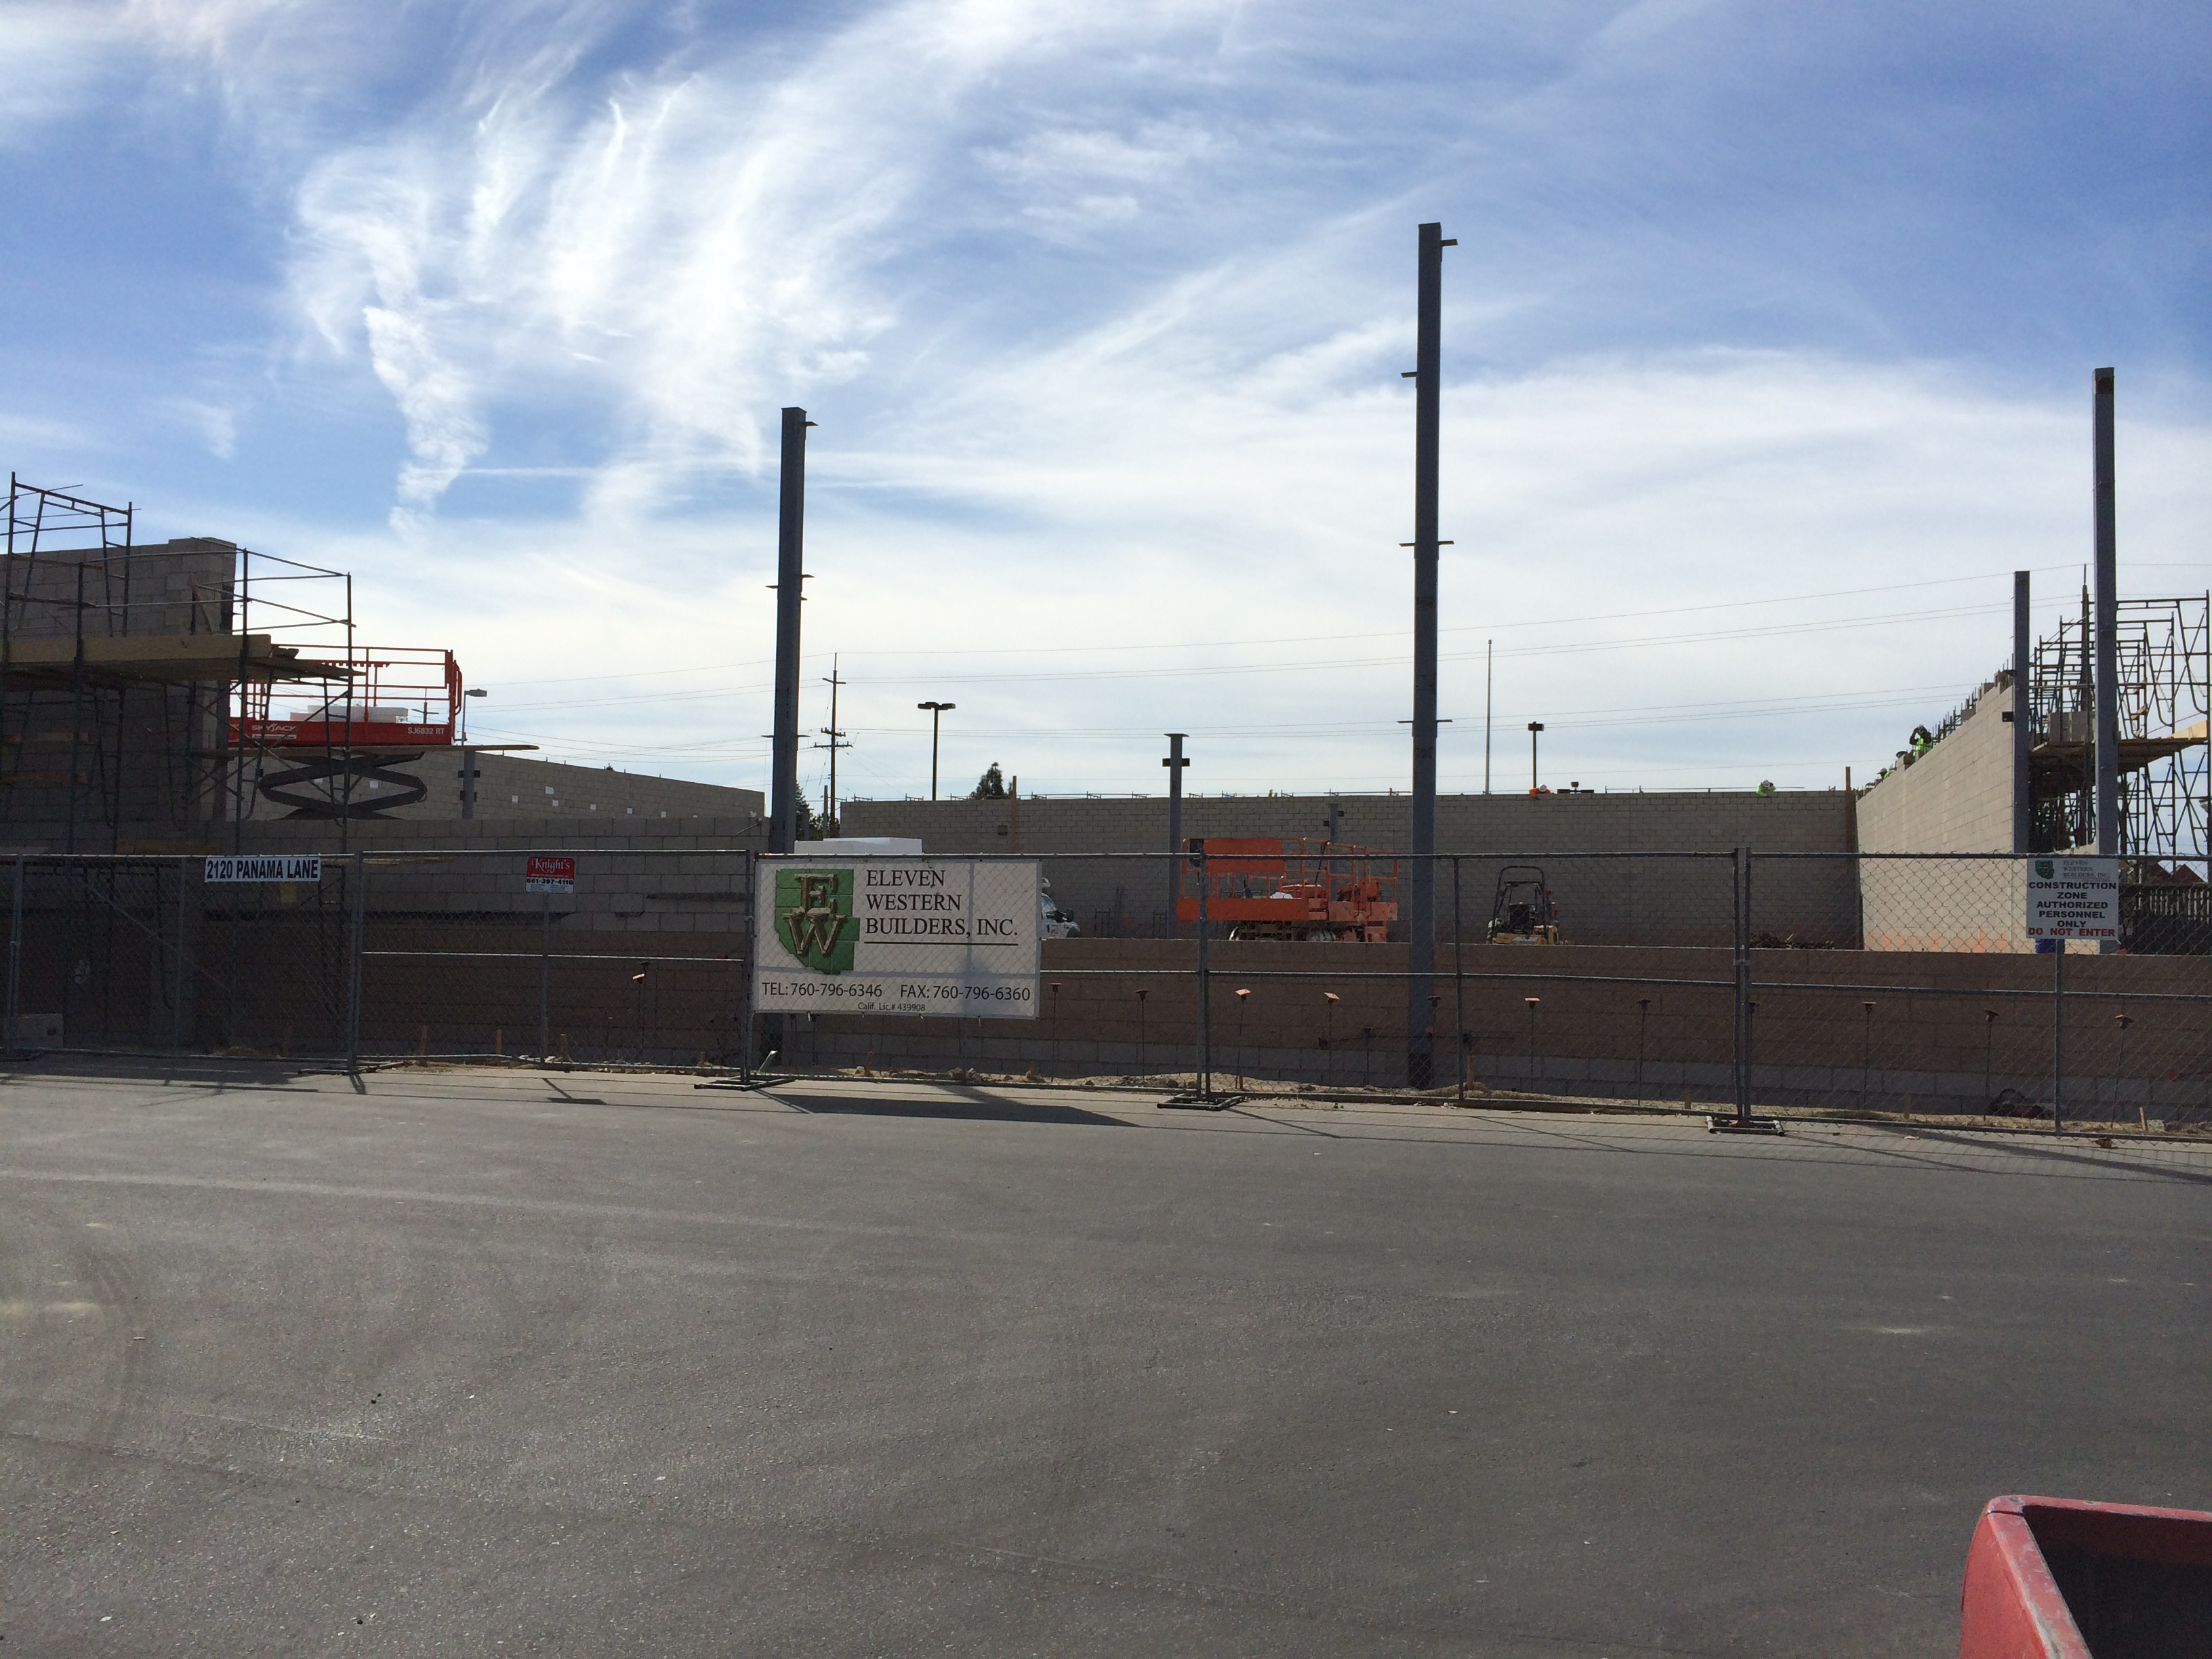 Aldi market 92 west coast drywall construction inc for Builders in bakersfield